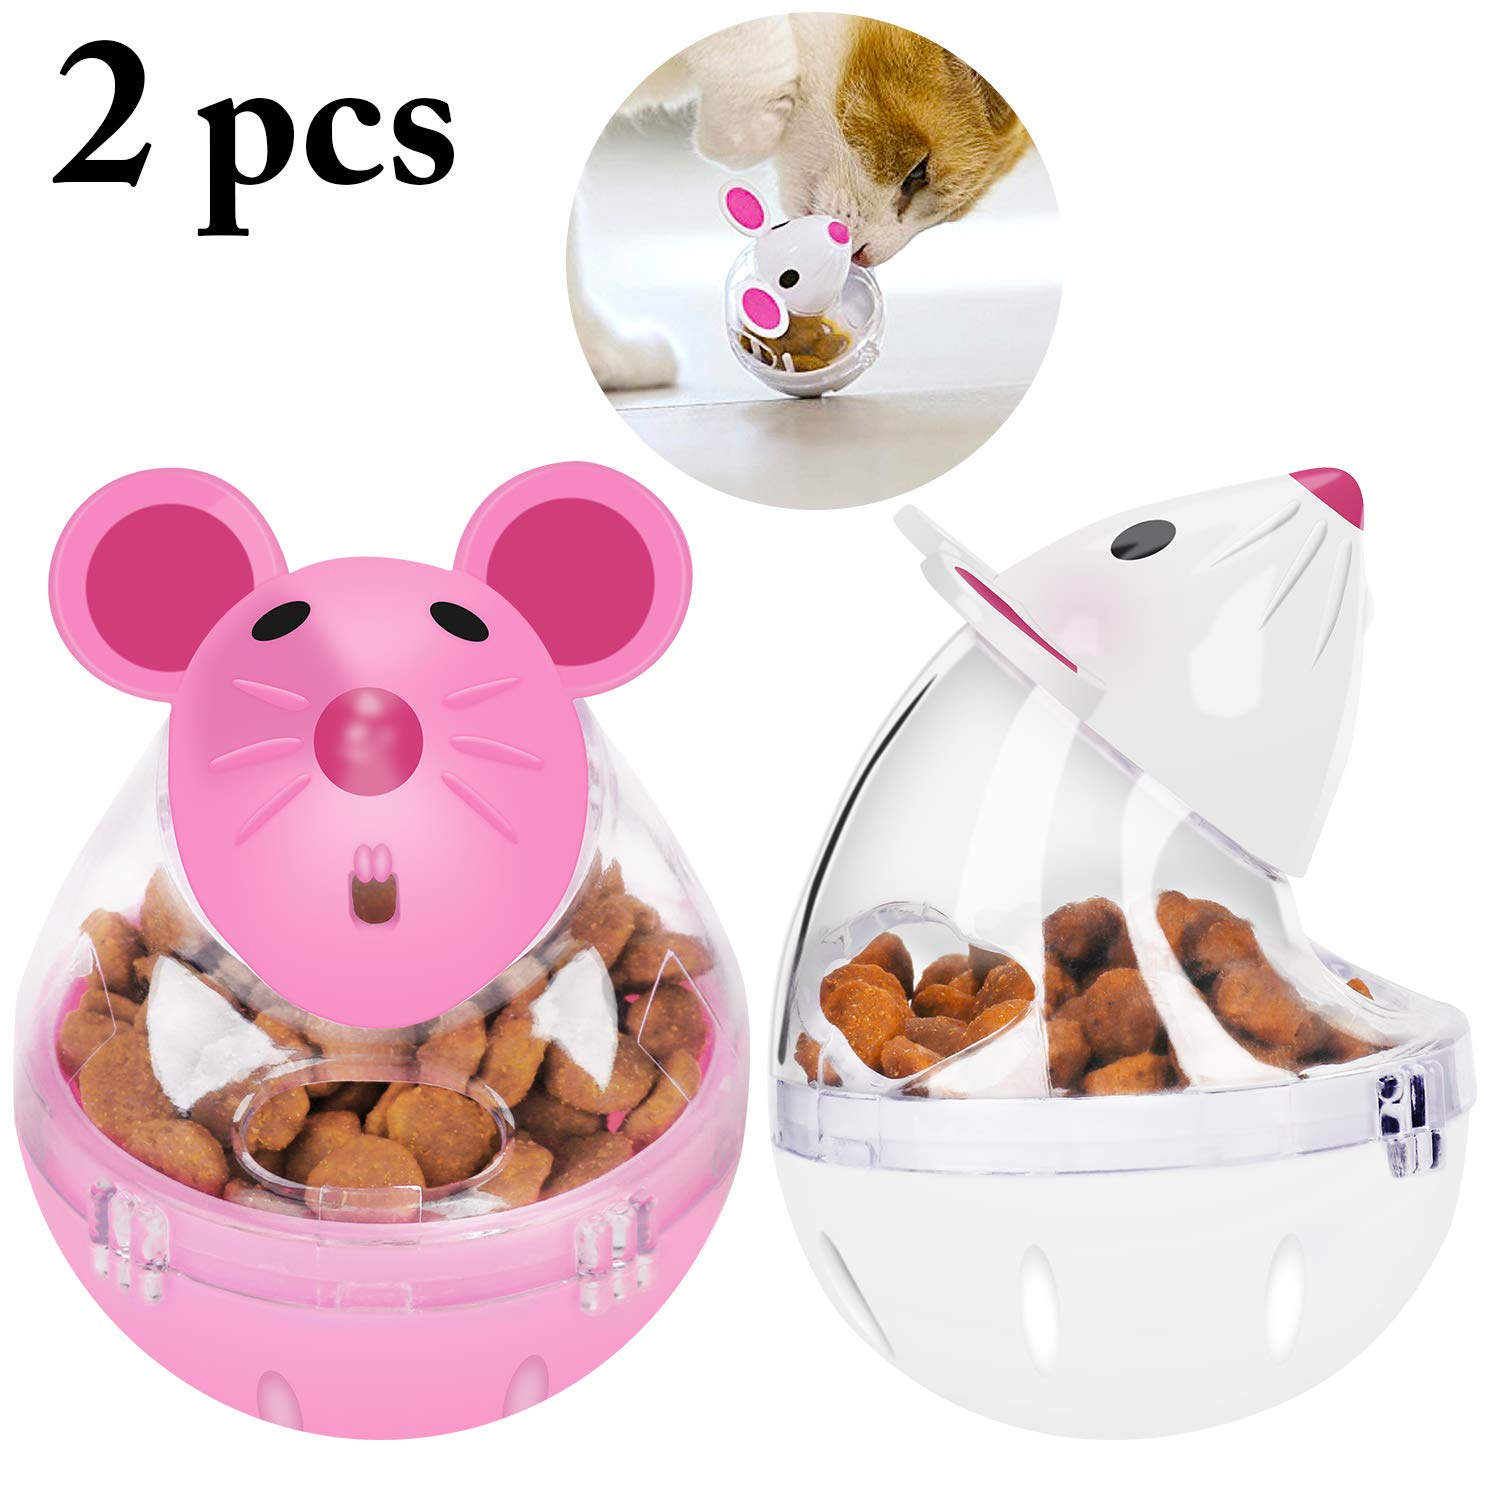 Legendog 2pcs Cat Slow Feeder Cat Food Ball Mice Tumbler Shaped Pet Treat Ball Cat Food Toy Ball Pet Food Ball